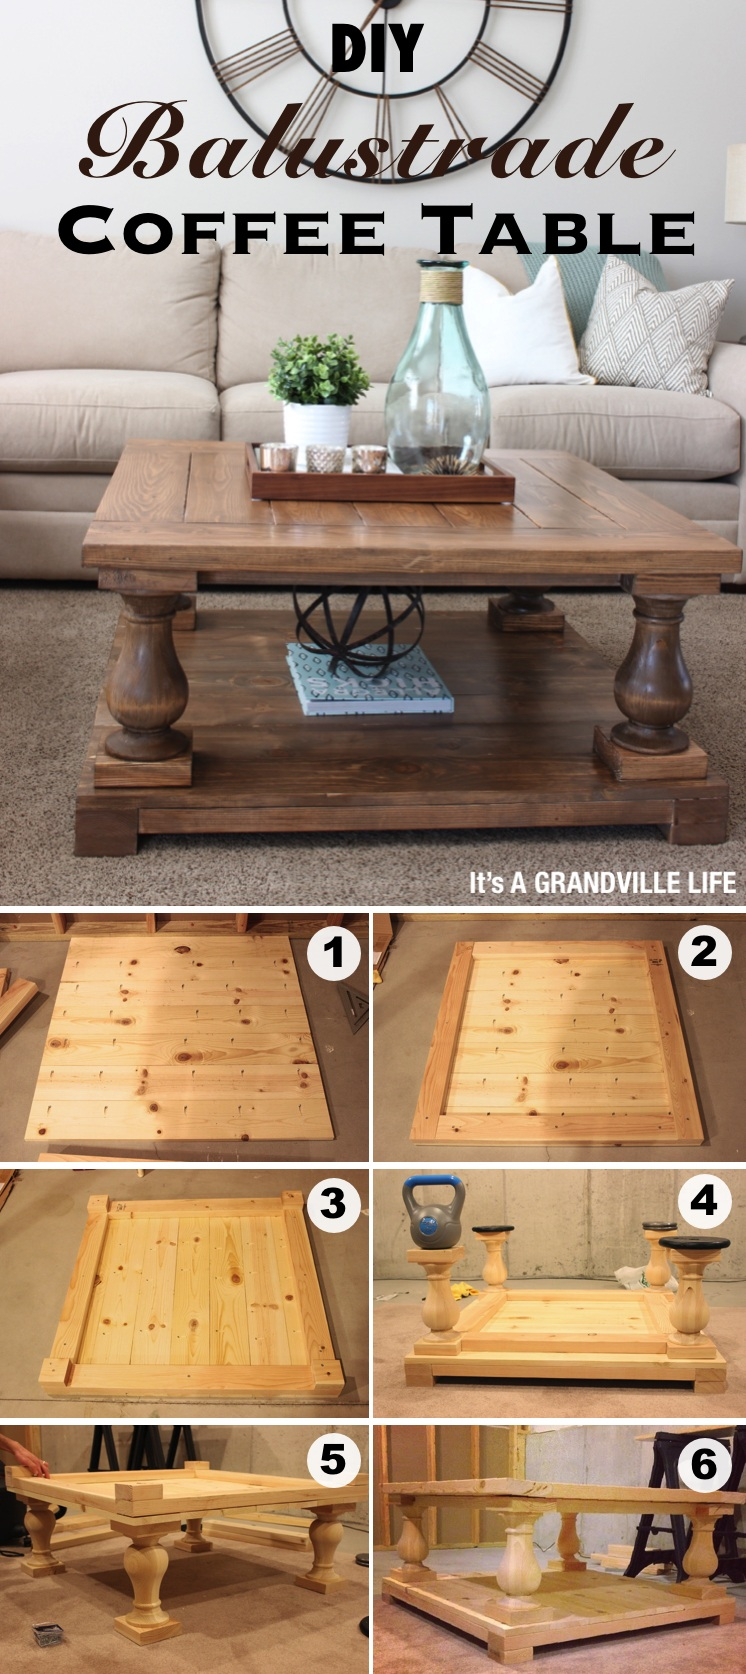 15 Creative Diy Coffee Table Ideas You